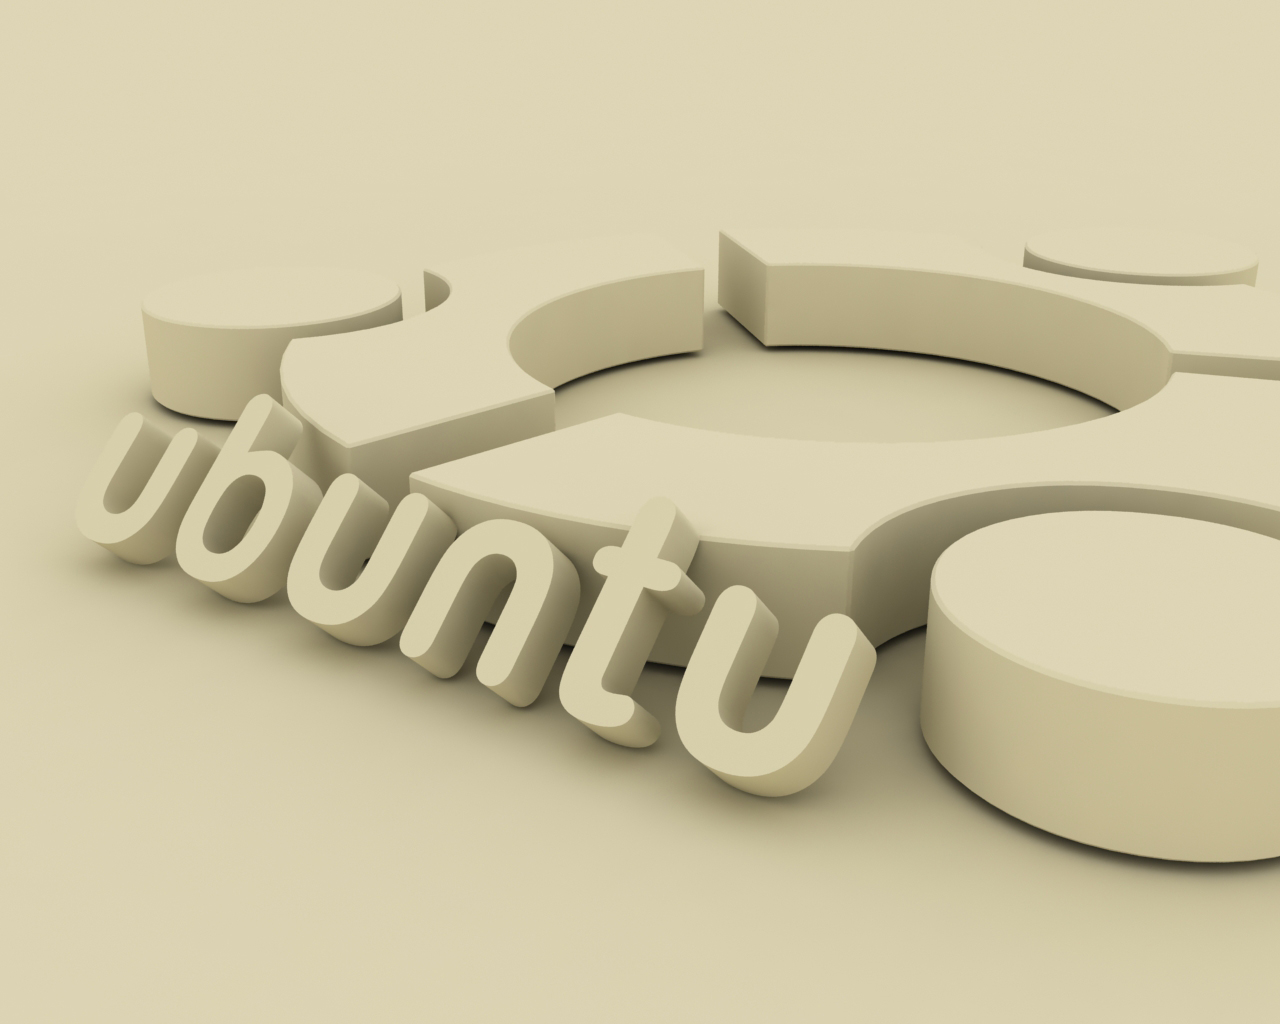 Desktop Wallpaper: 3D Ubuntu Logo HD Wallpaper